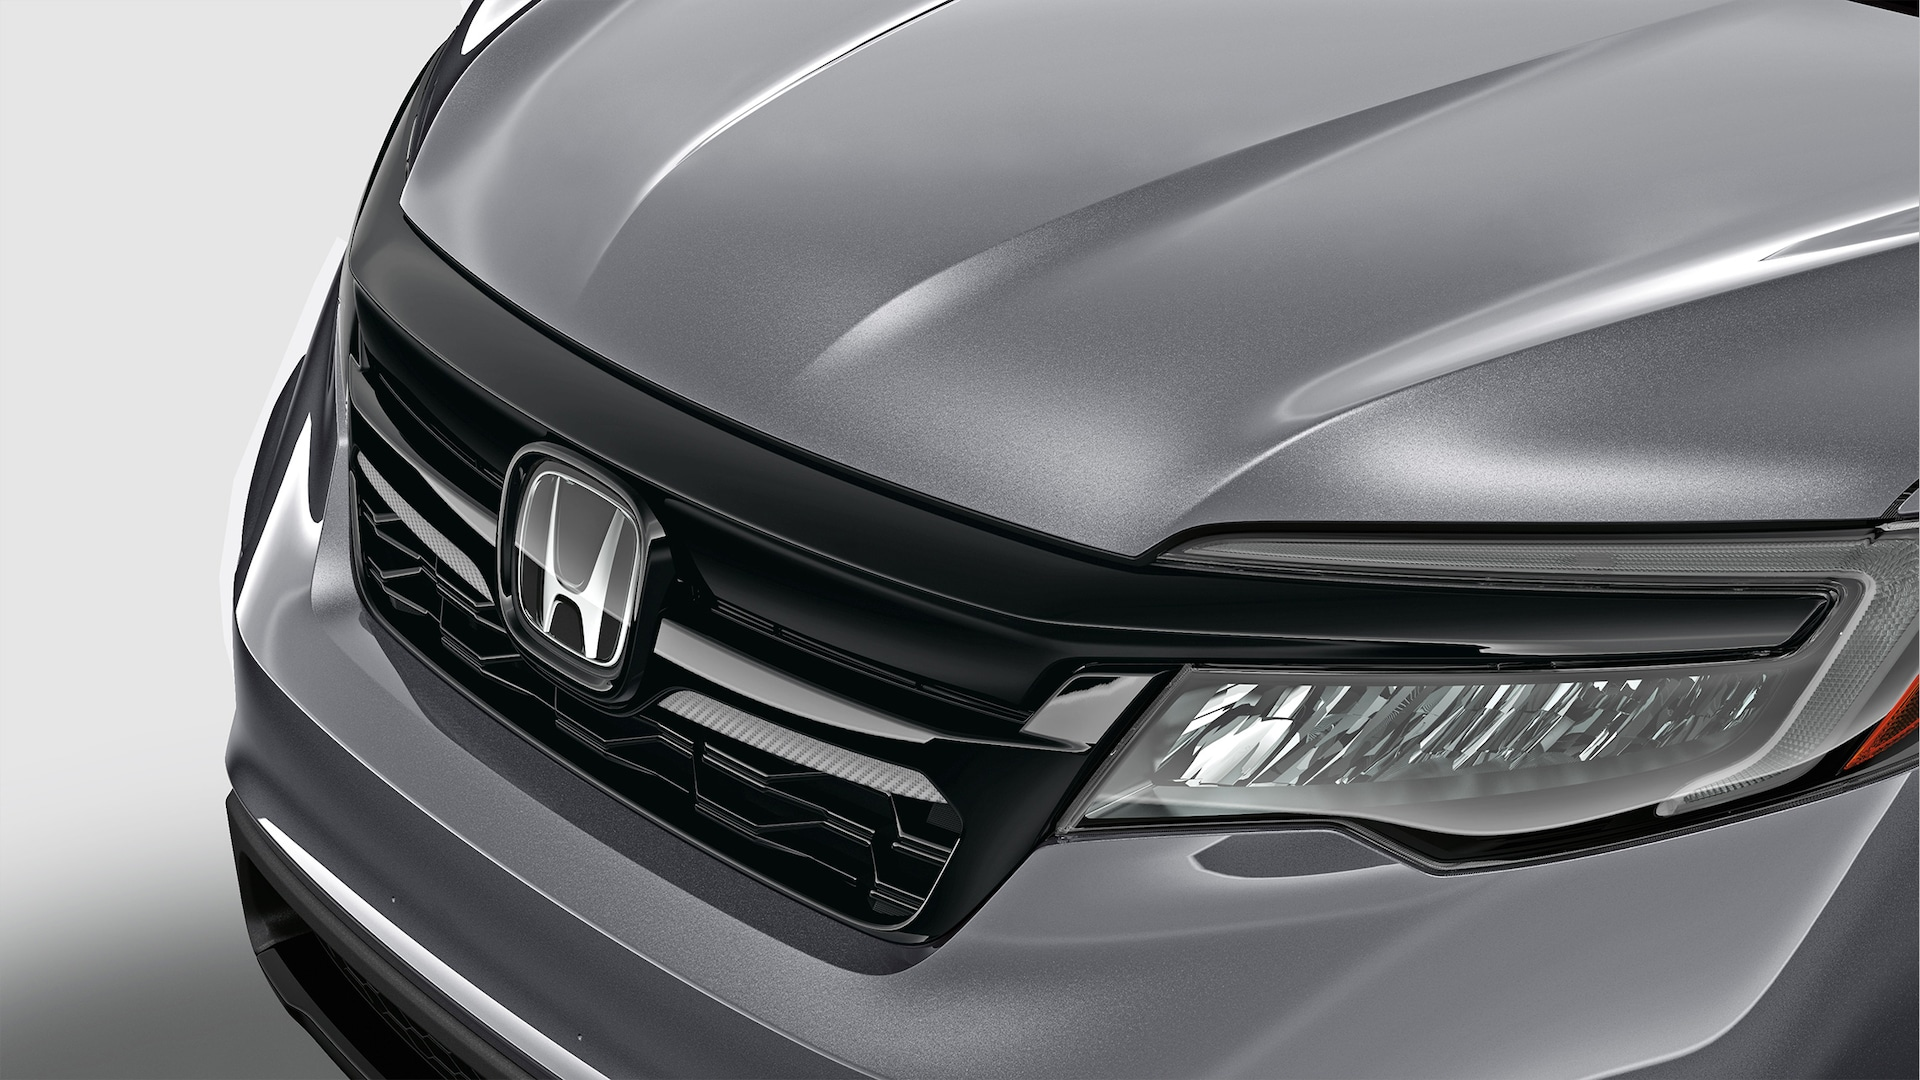 Front grille carbon inserts detail in black on 2020 Honda Pilot in Modern Steel Metallic.